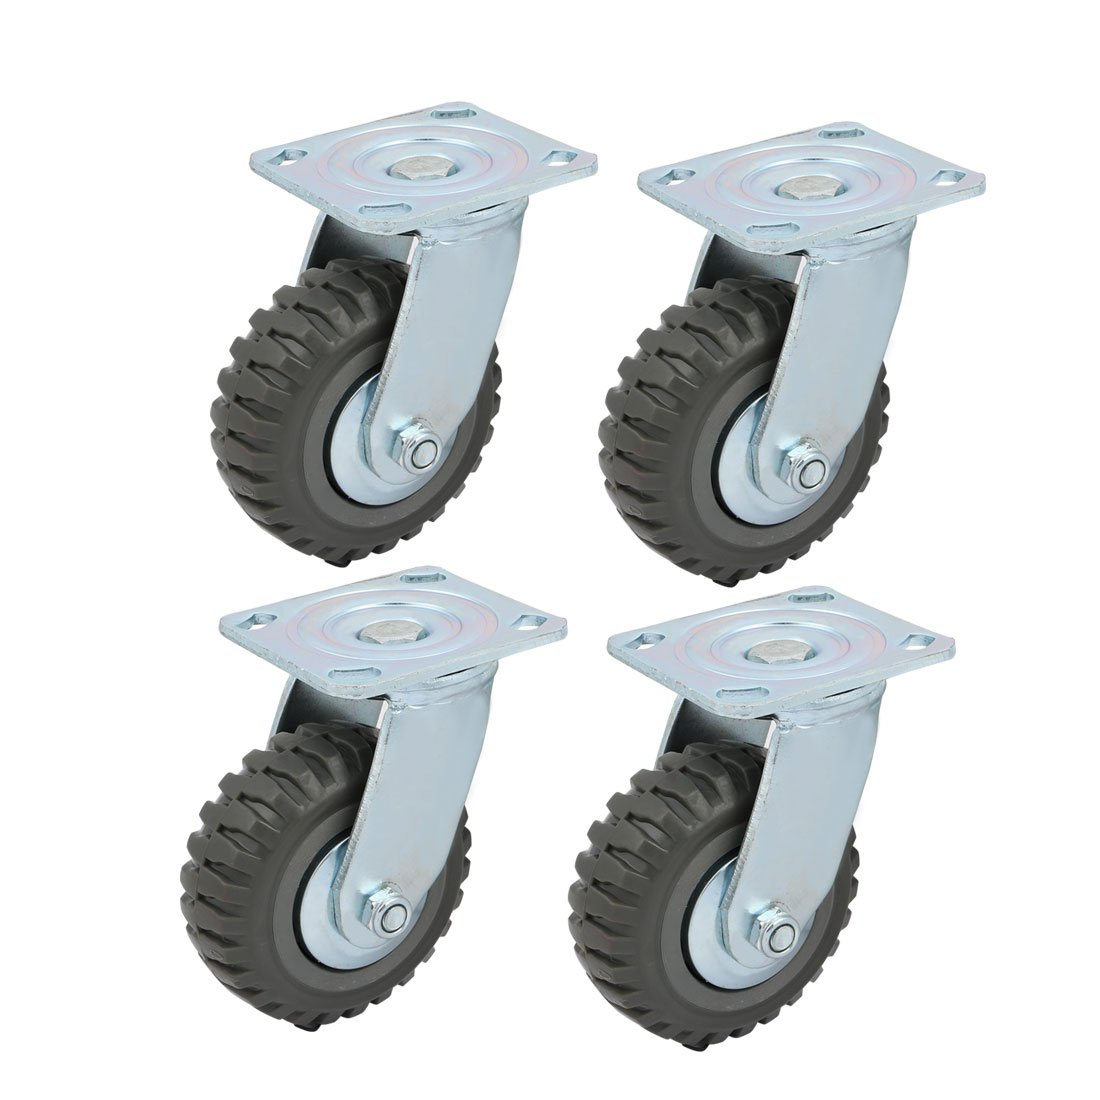 uxcell 5-inch Dia Single Wheel Screw Mounted Top Plate Swivel Caster Roller 4pcs